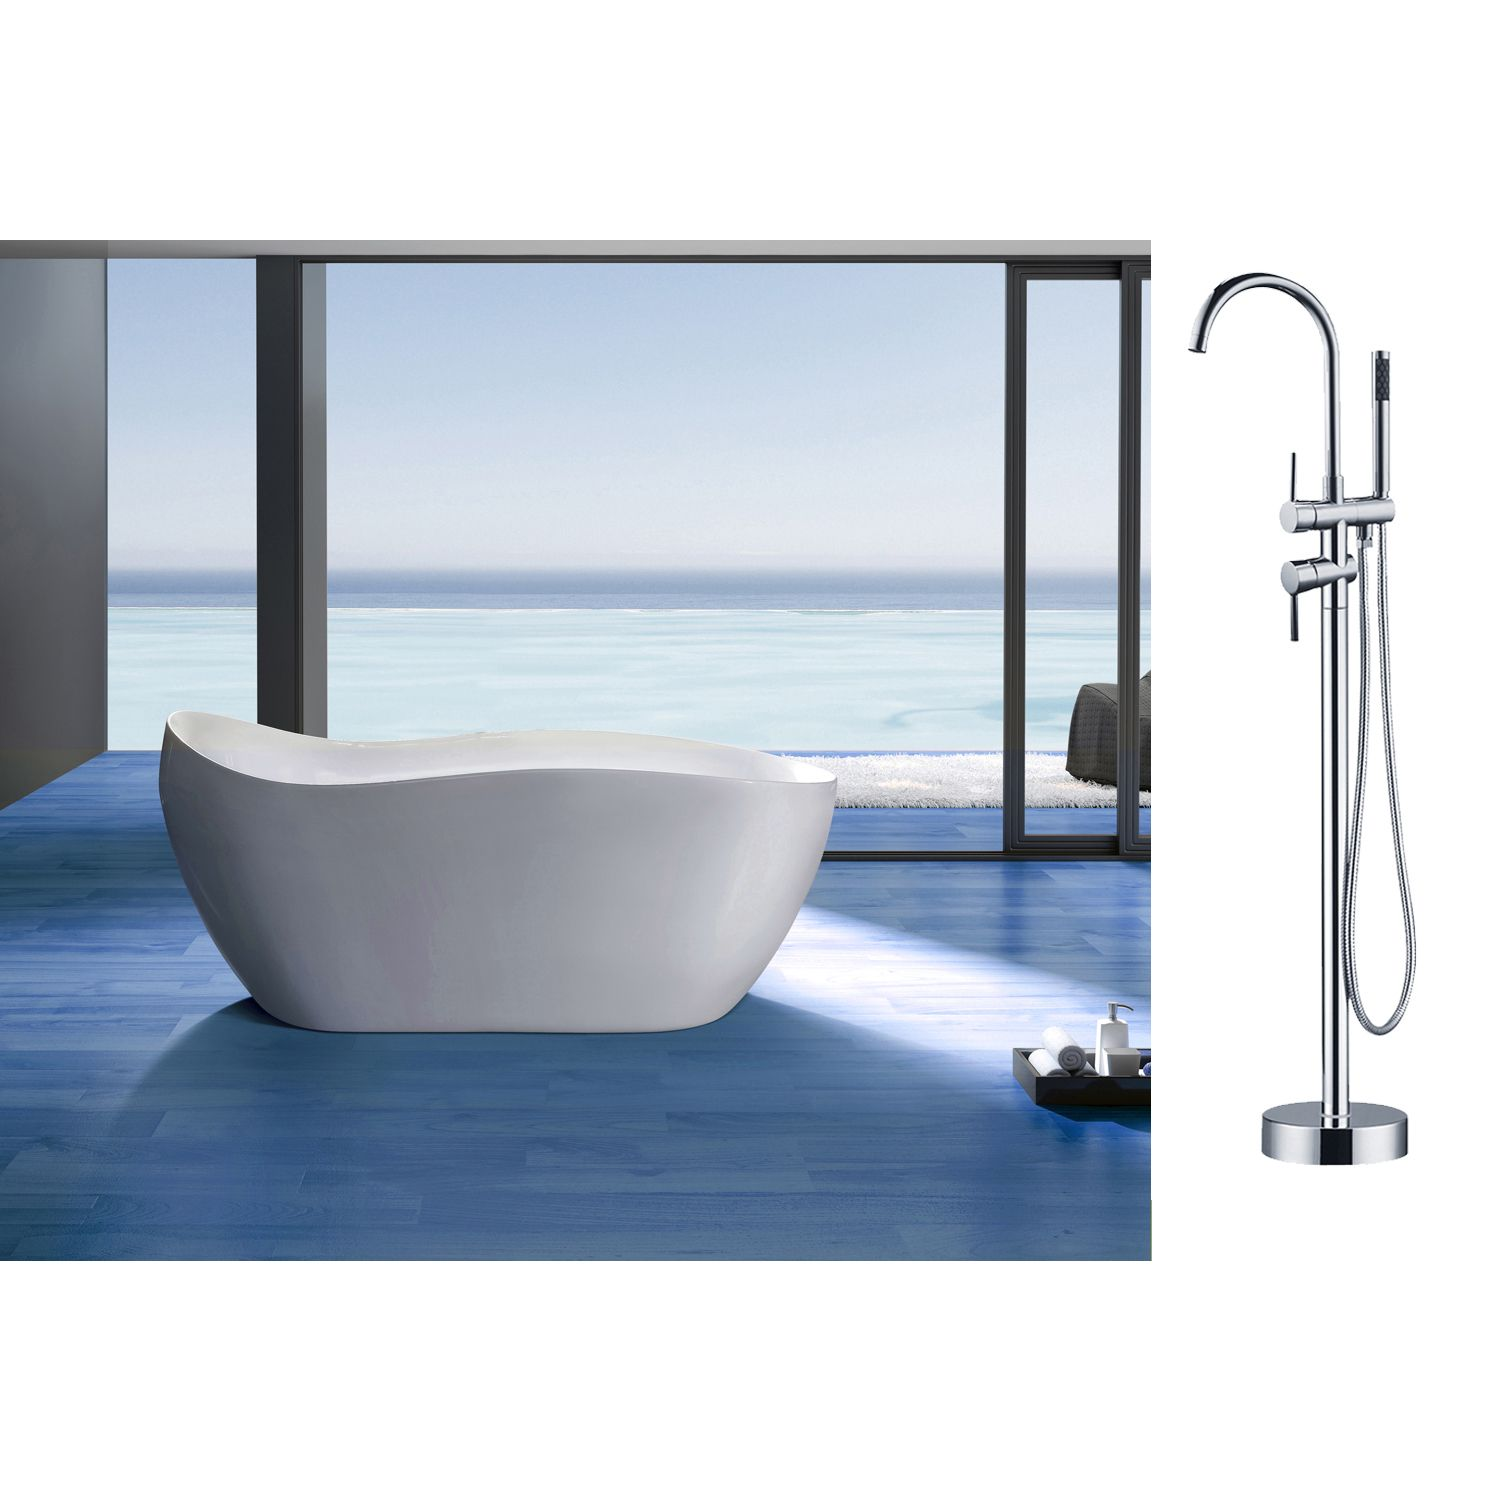 This free standing, acrylic bathtub is durable, light weight, and ...